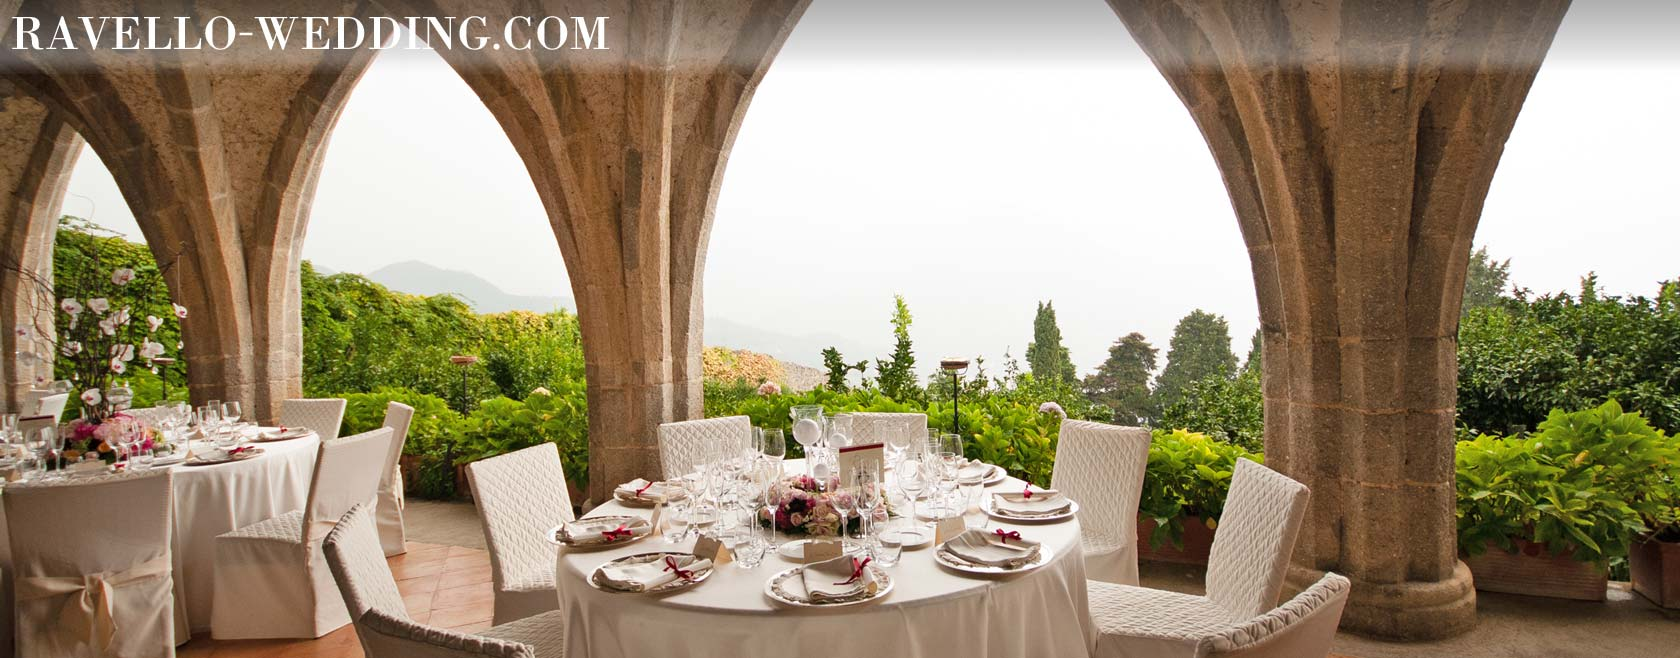 Wedding venues | Ravello